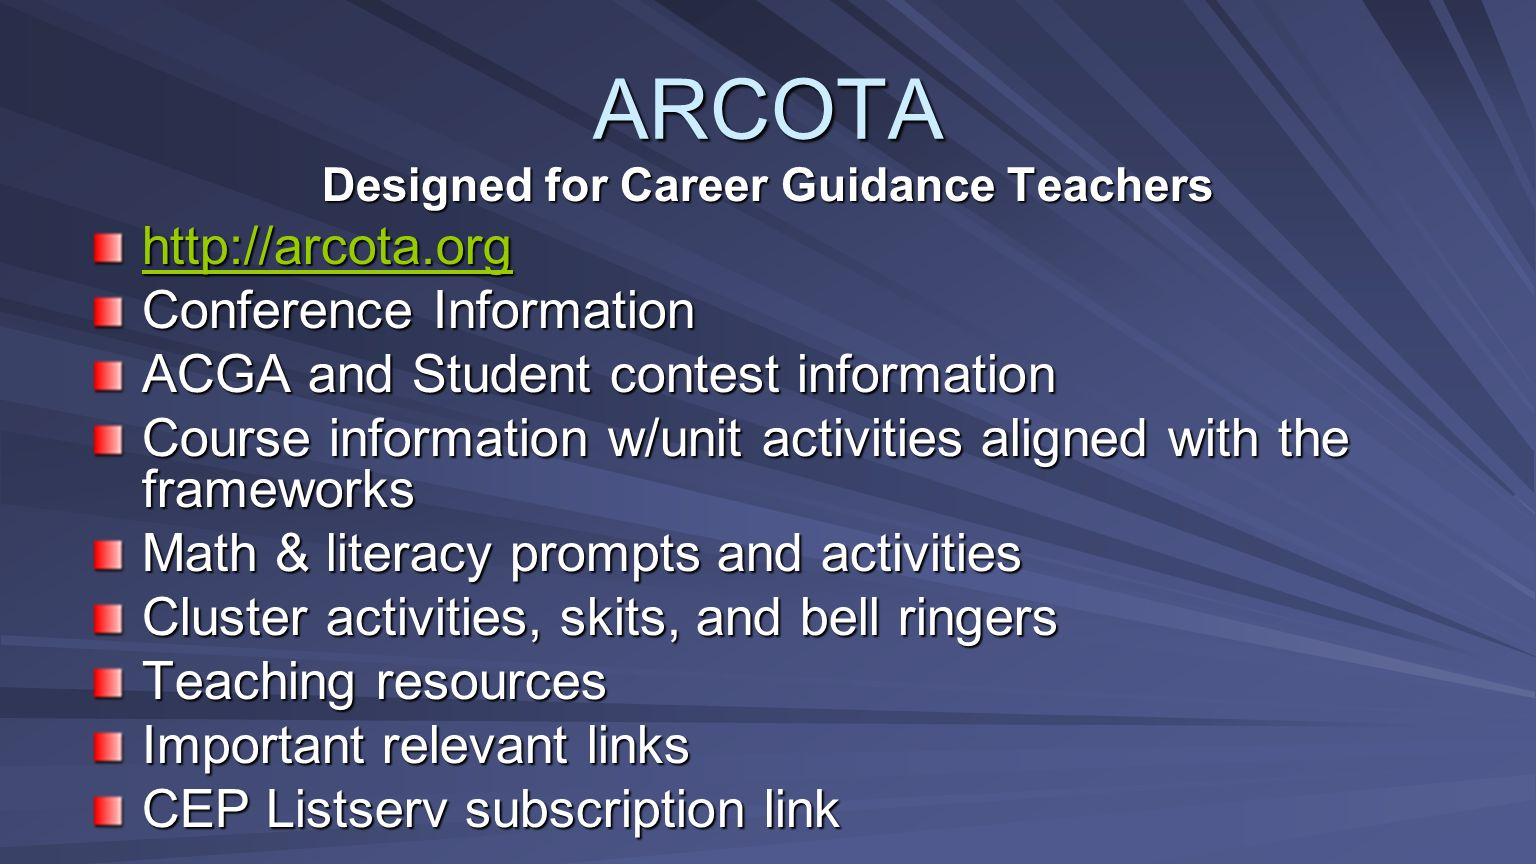 Designed for Career Guidance Teachers http://arcota.org Conference Information ACGA and Student contest information Course information w/unit activities aligned with the frameworks Math & literacy prompts and activities Cluster activities, skits, and bell ringers Teaching resources Important relevant links CEP Listserv subscription link ARCOTA